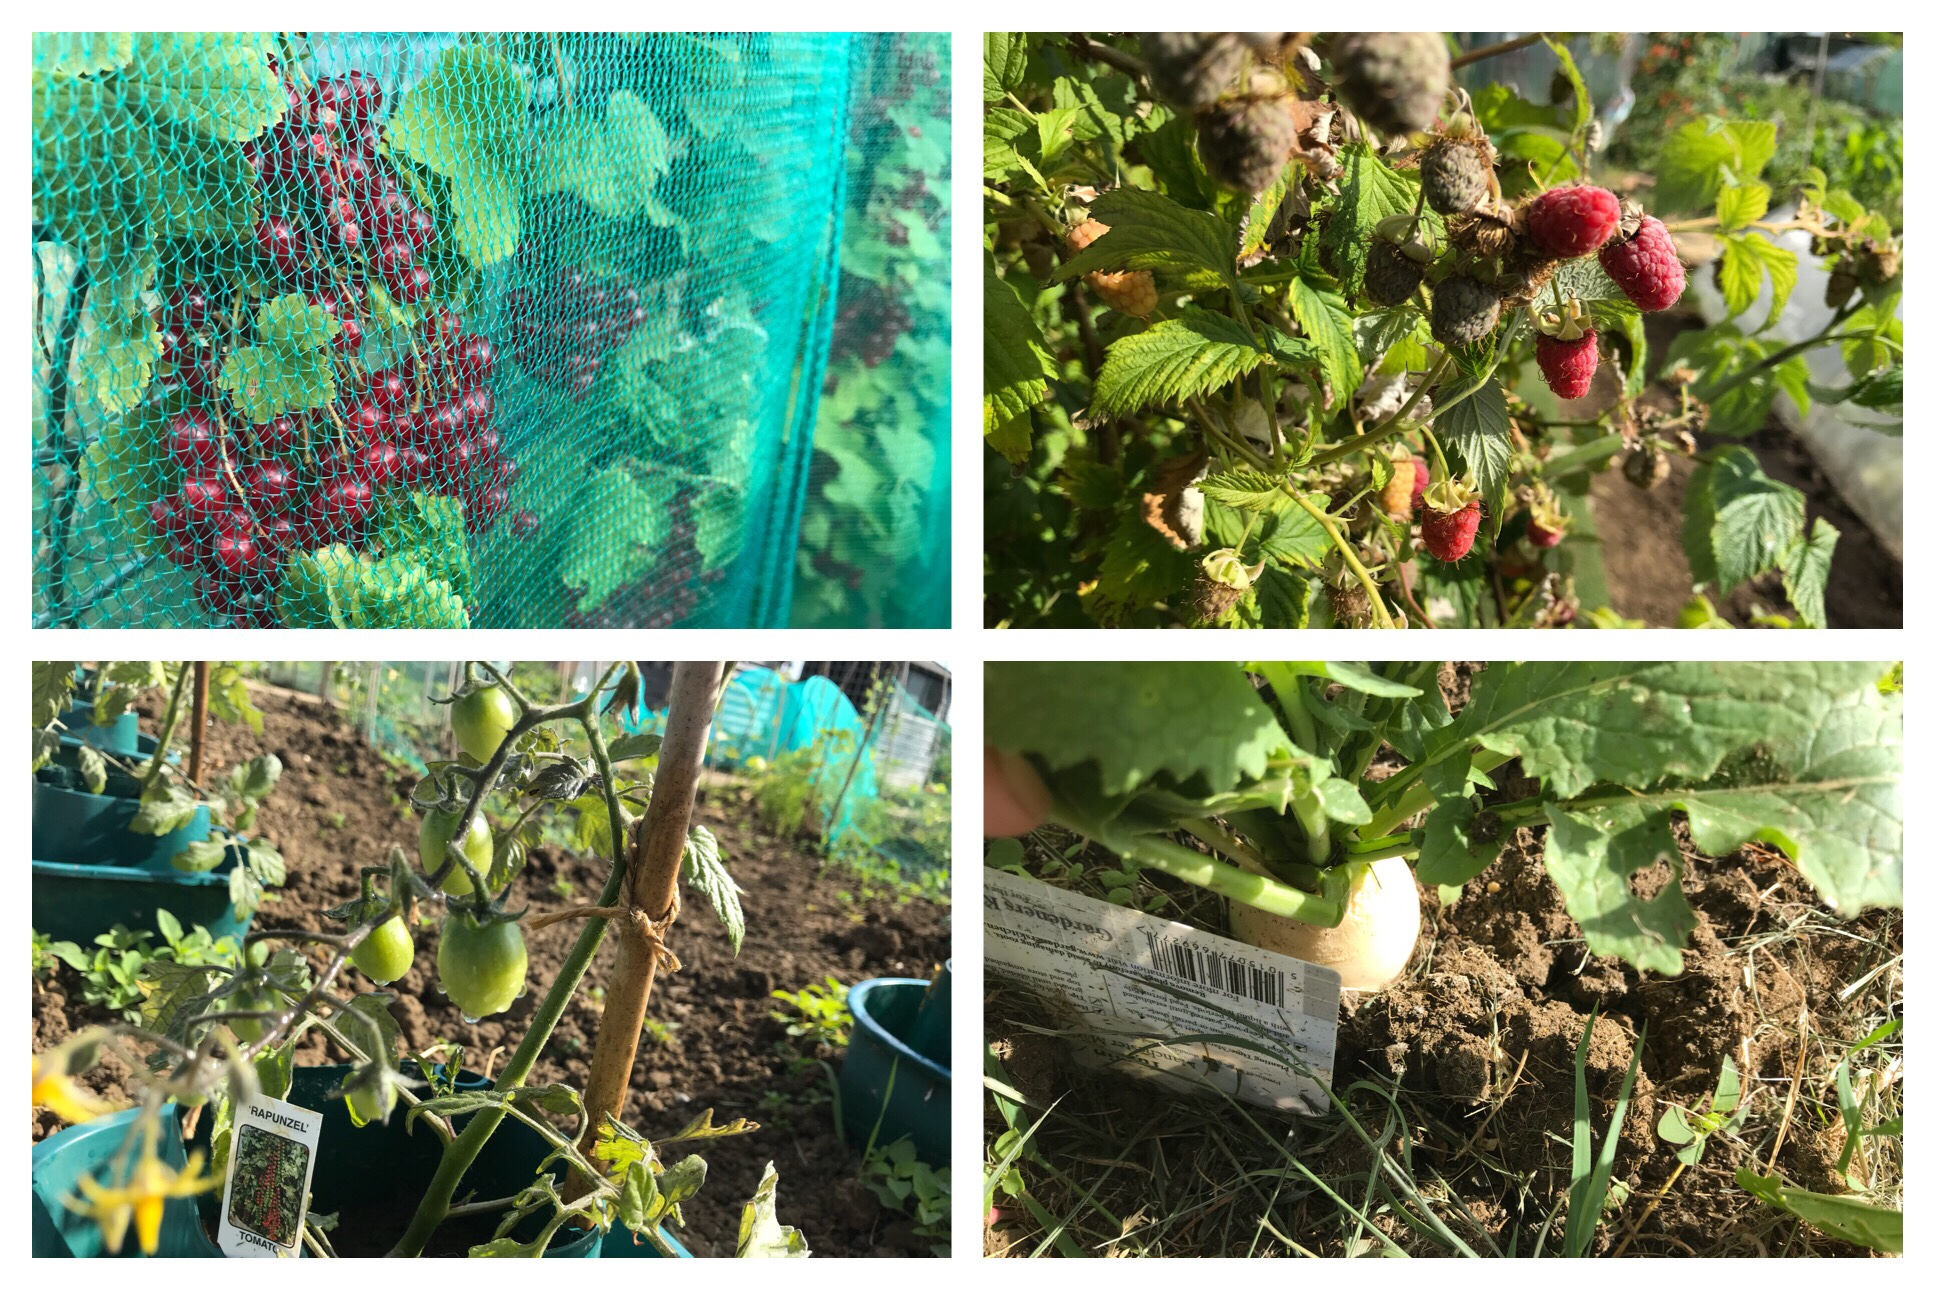 Pictures of plants and fruit ripening. Raspberries, currants, turnips, tomatoes.